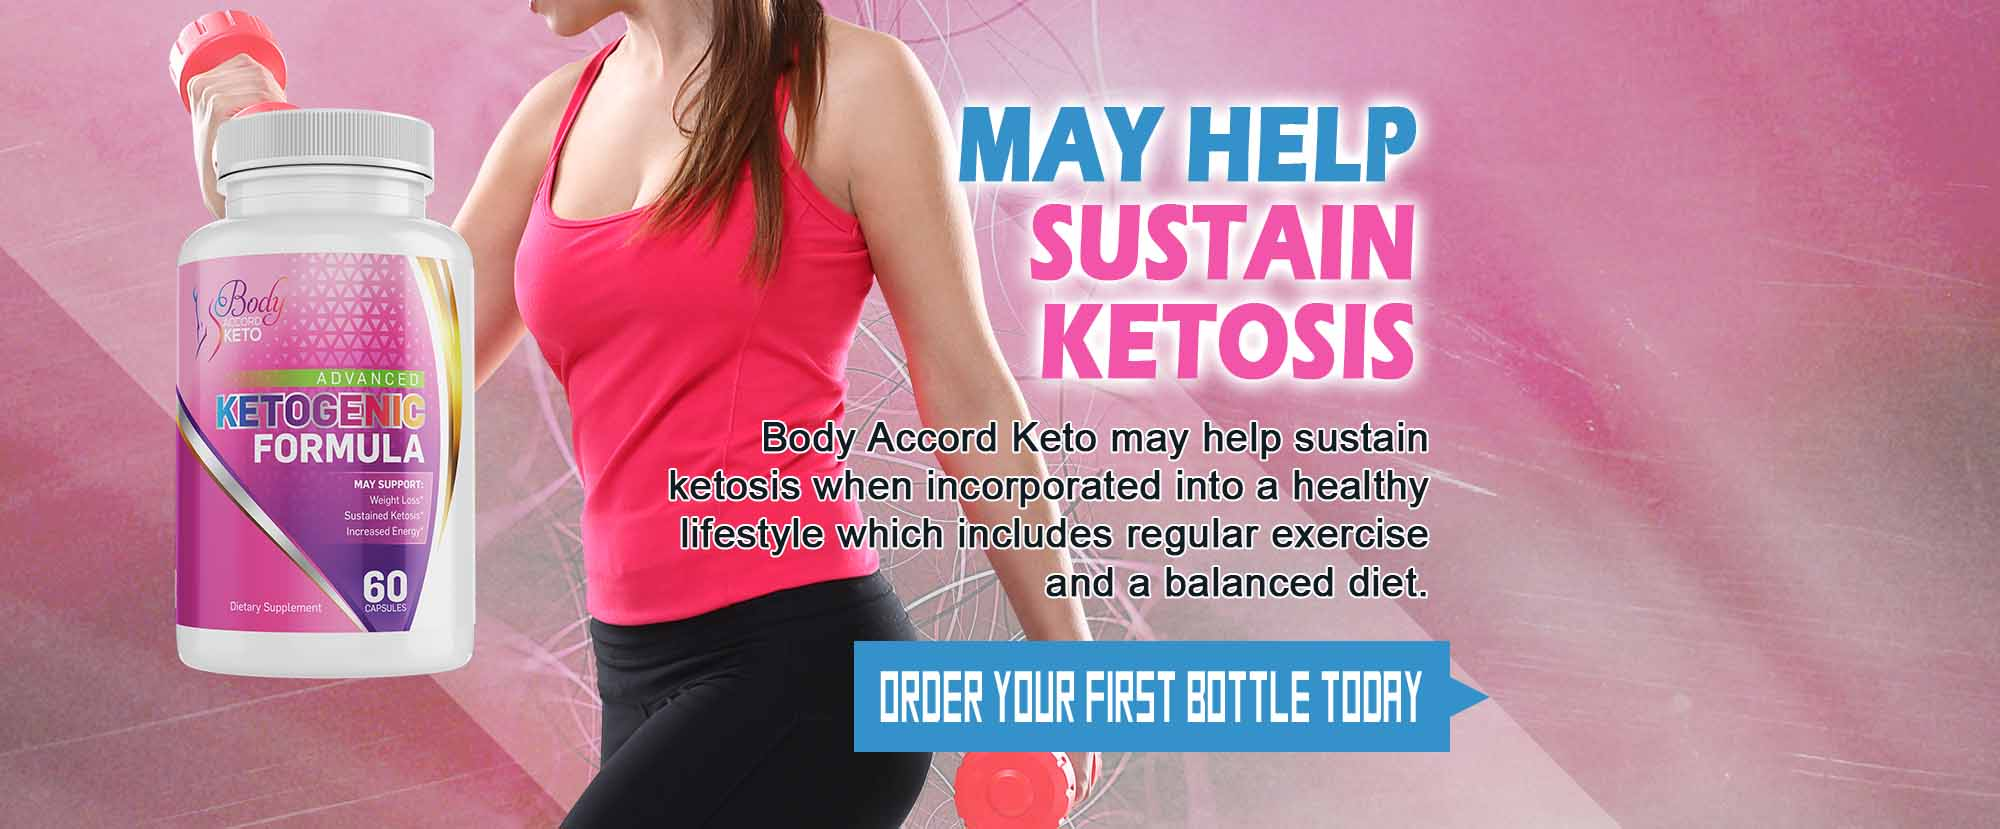 Body Accord Keto® *Scam or Hoax* Price, Ingredients, Benefits, Reviews?